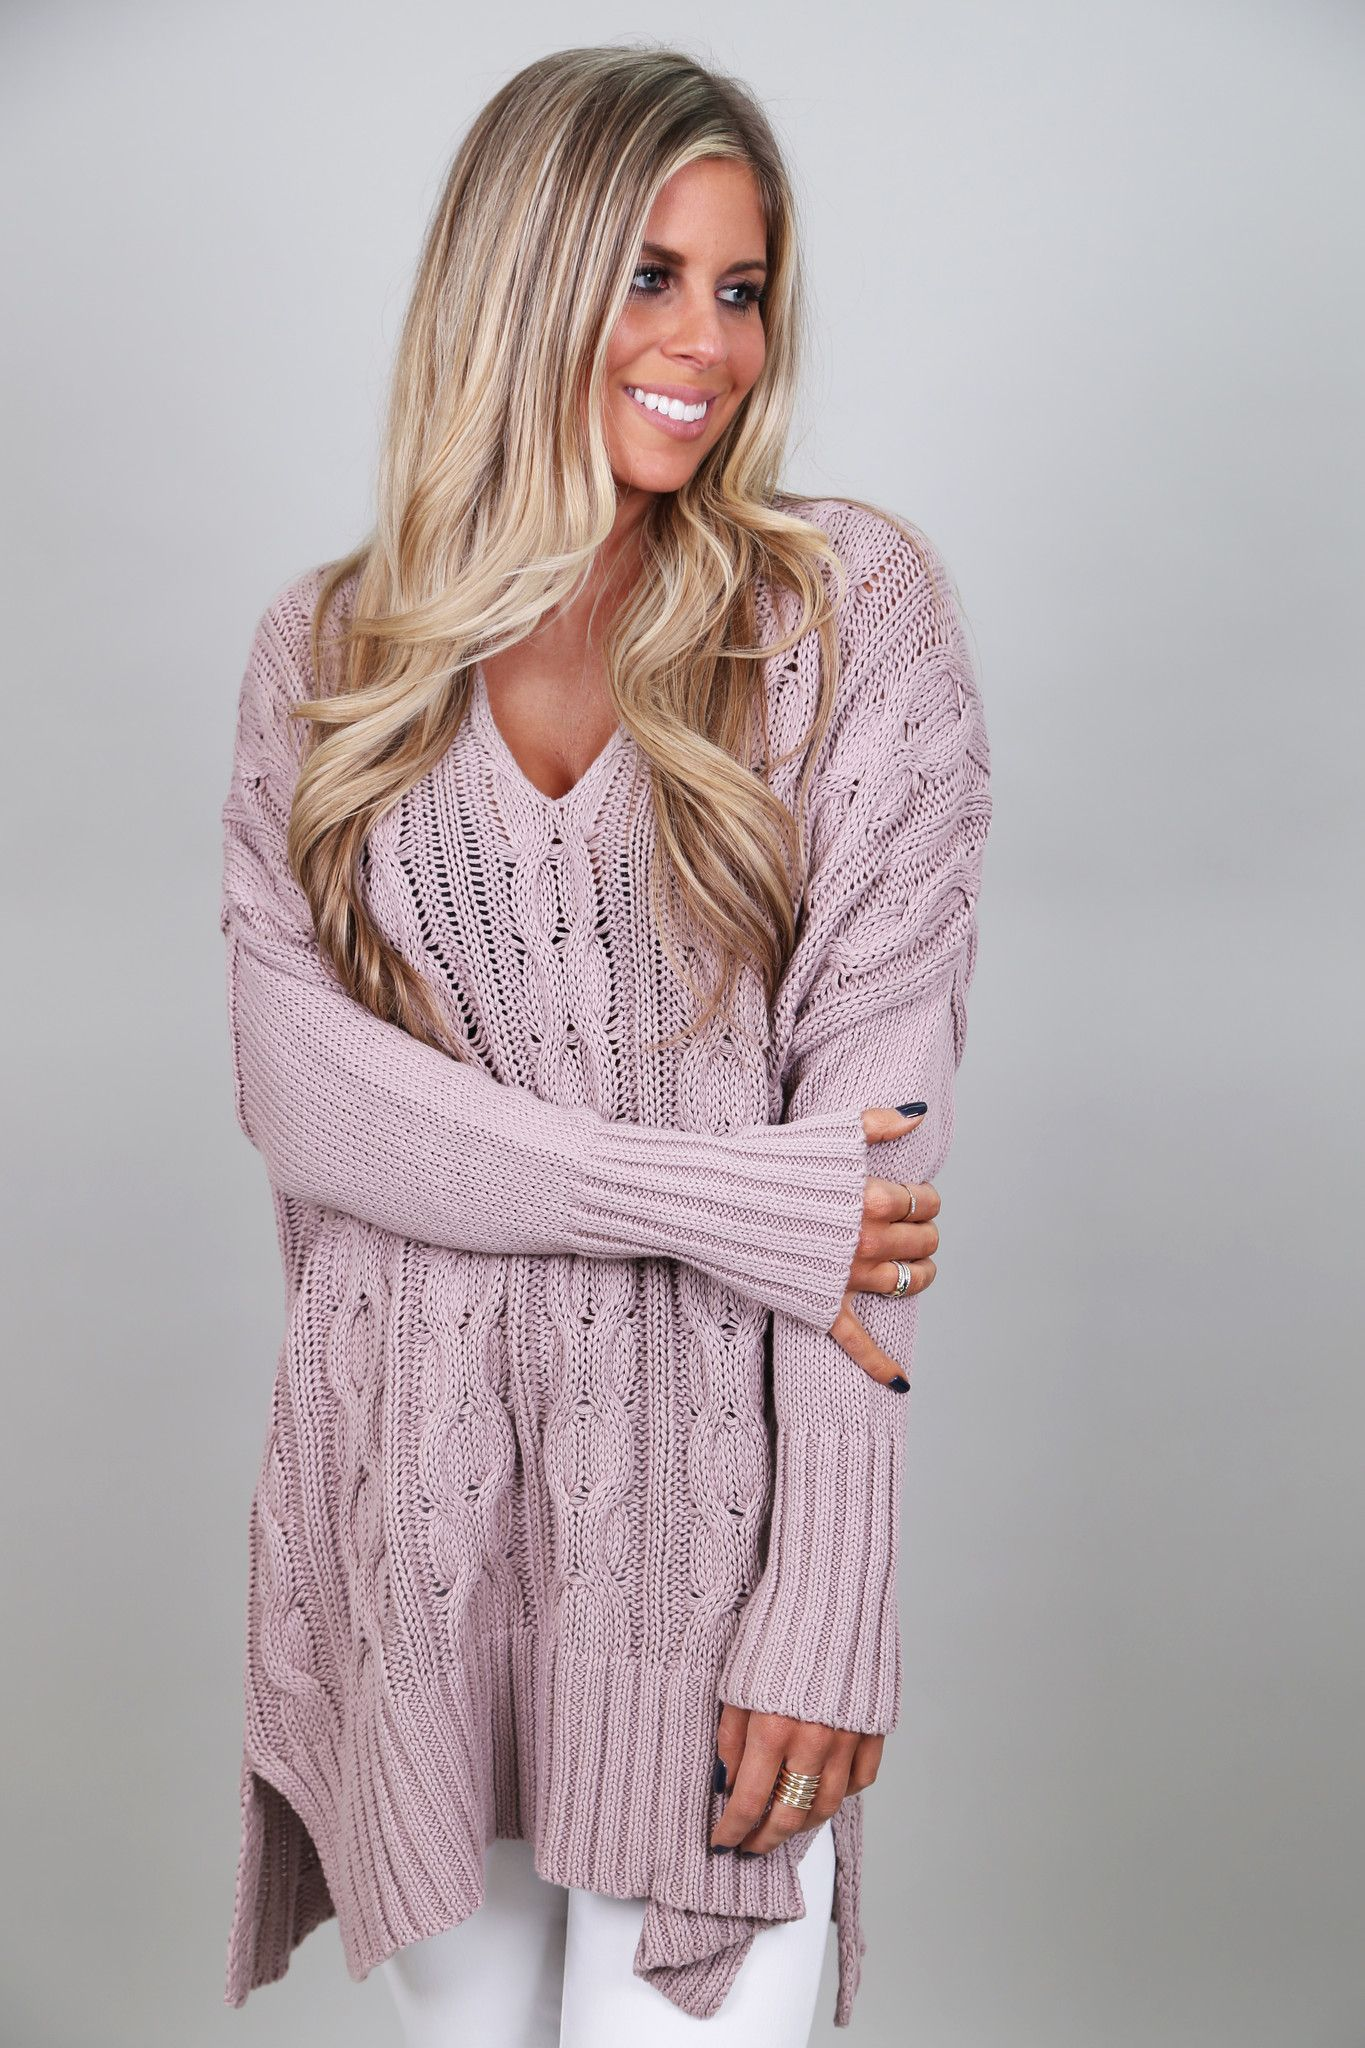 Every girl loves a big, slouchy, oh-so-comfy knit! This one hits ...